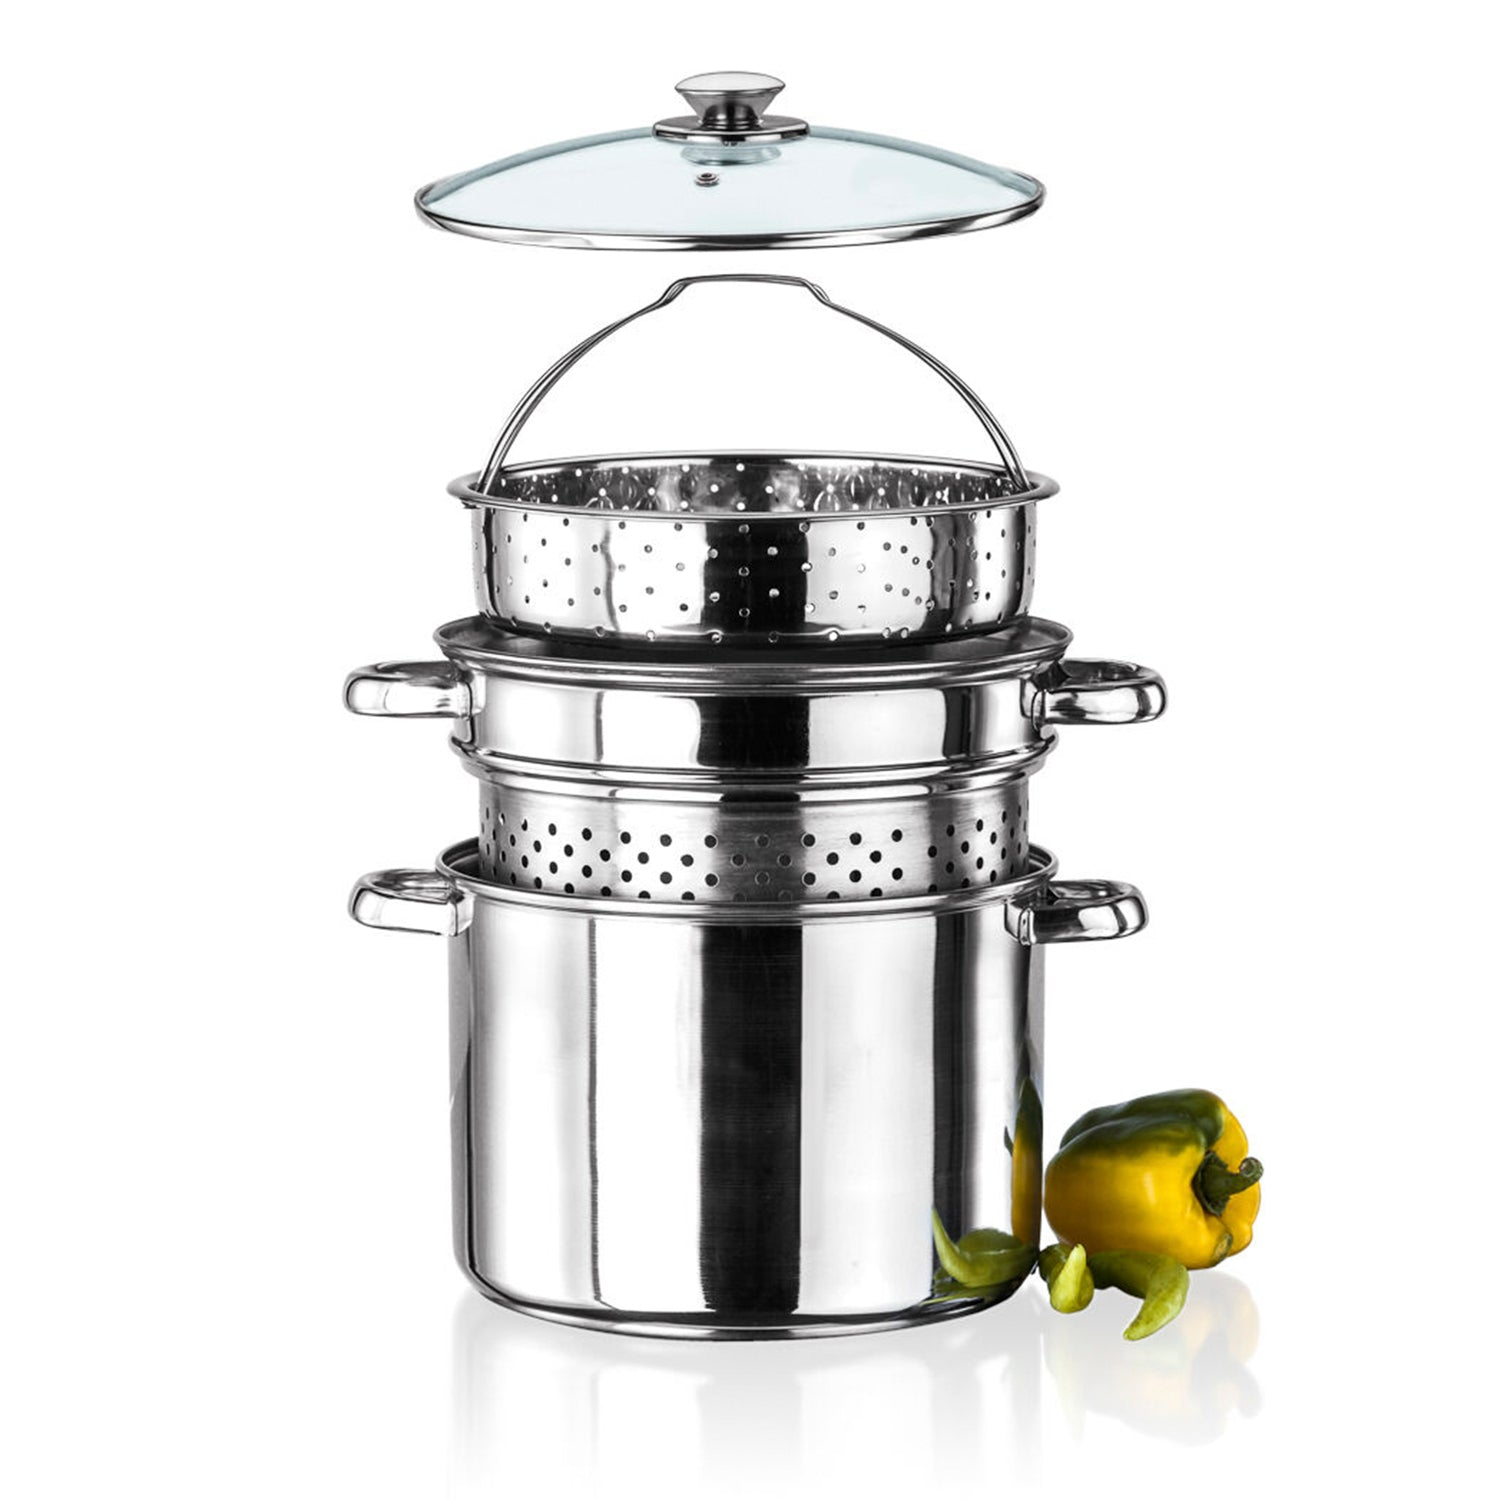 Stainless Steel 4 Pcs Pasta Cooker Set - 8 qt Stock Pot with Steamer Inserts